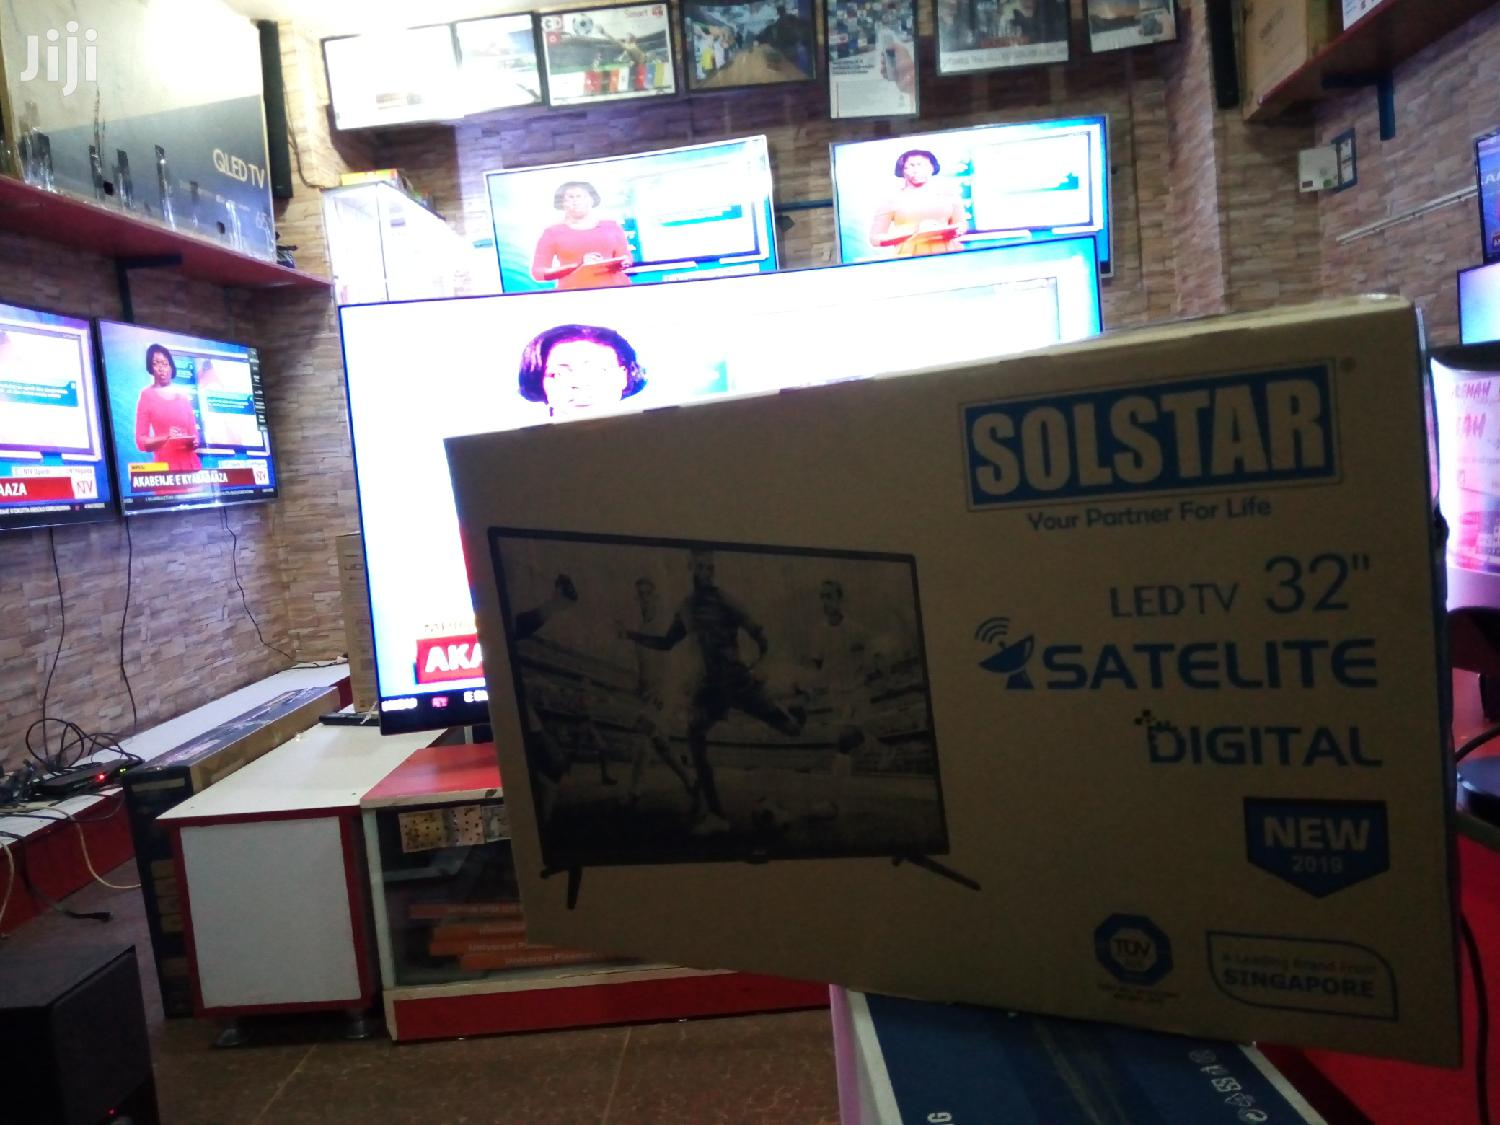 Solstar Digital Satellite TV 32 Inches | TV & DVD Equipment for sale in Kampala, Central Region, Uganda